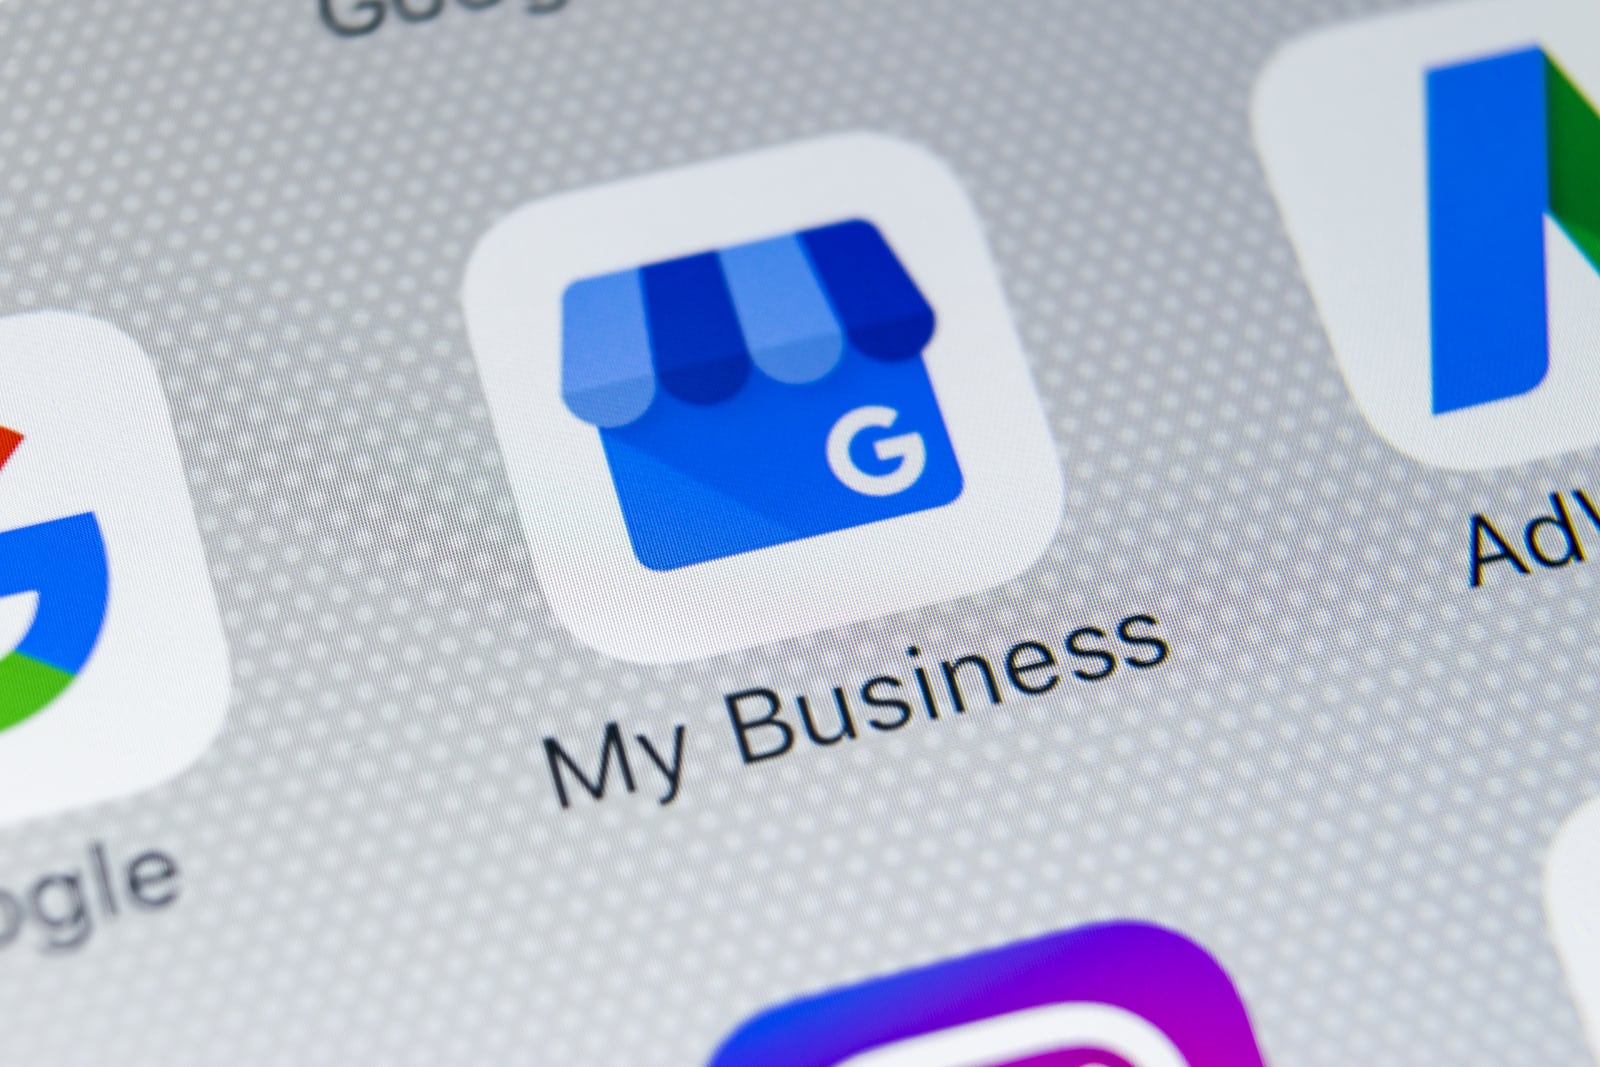 google my business application on mobile phone